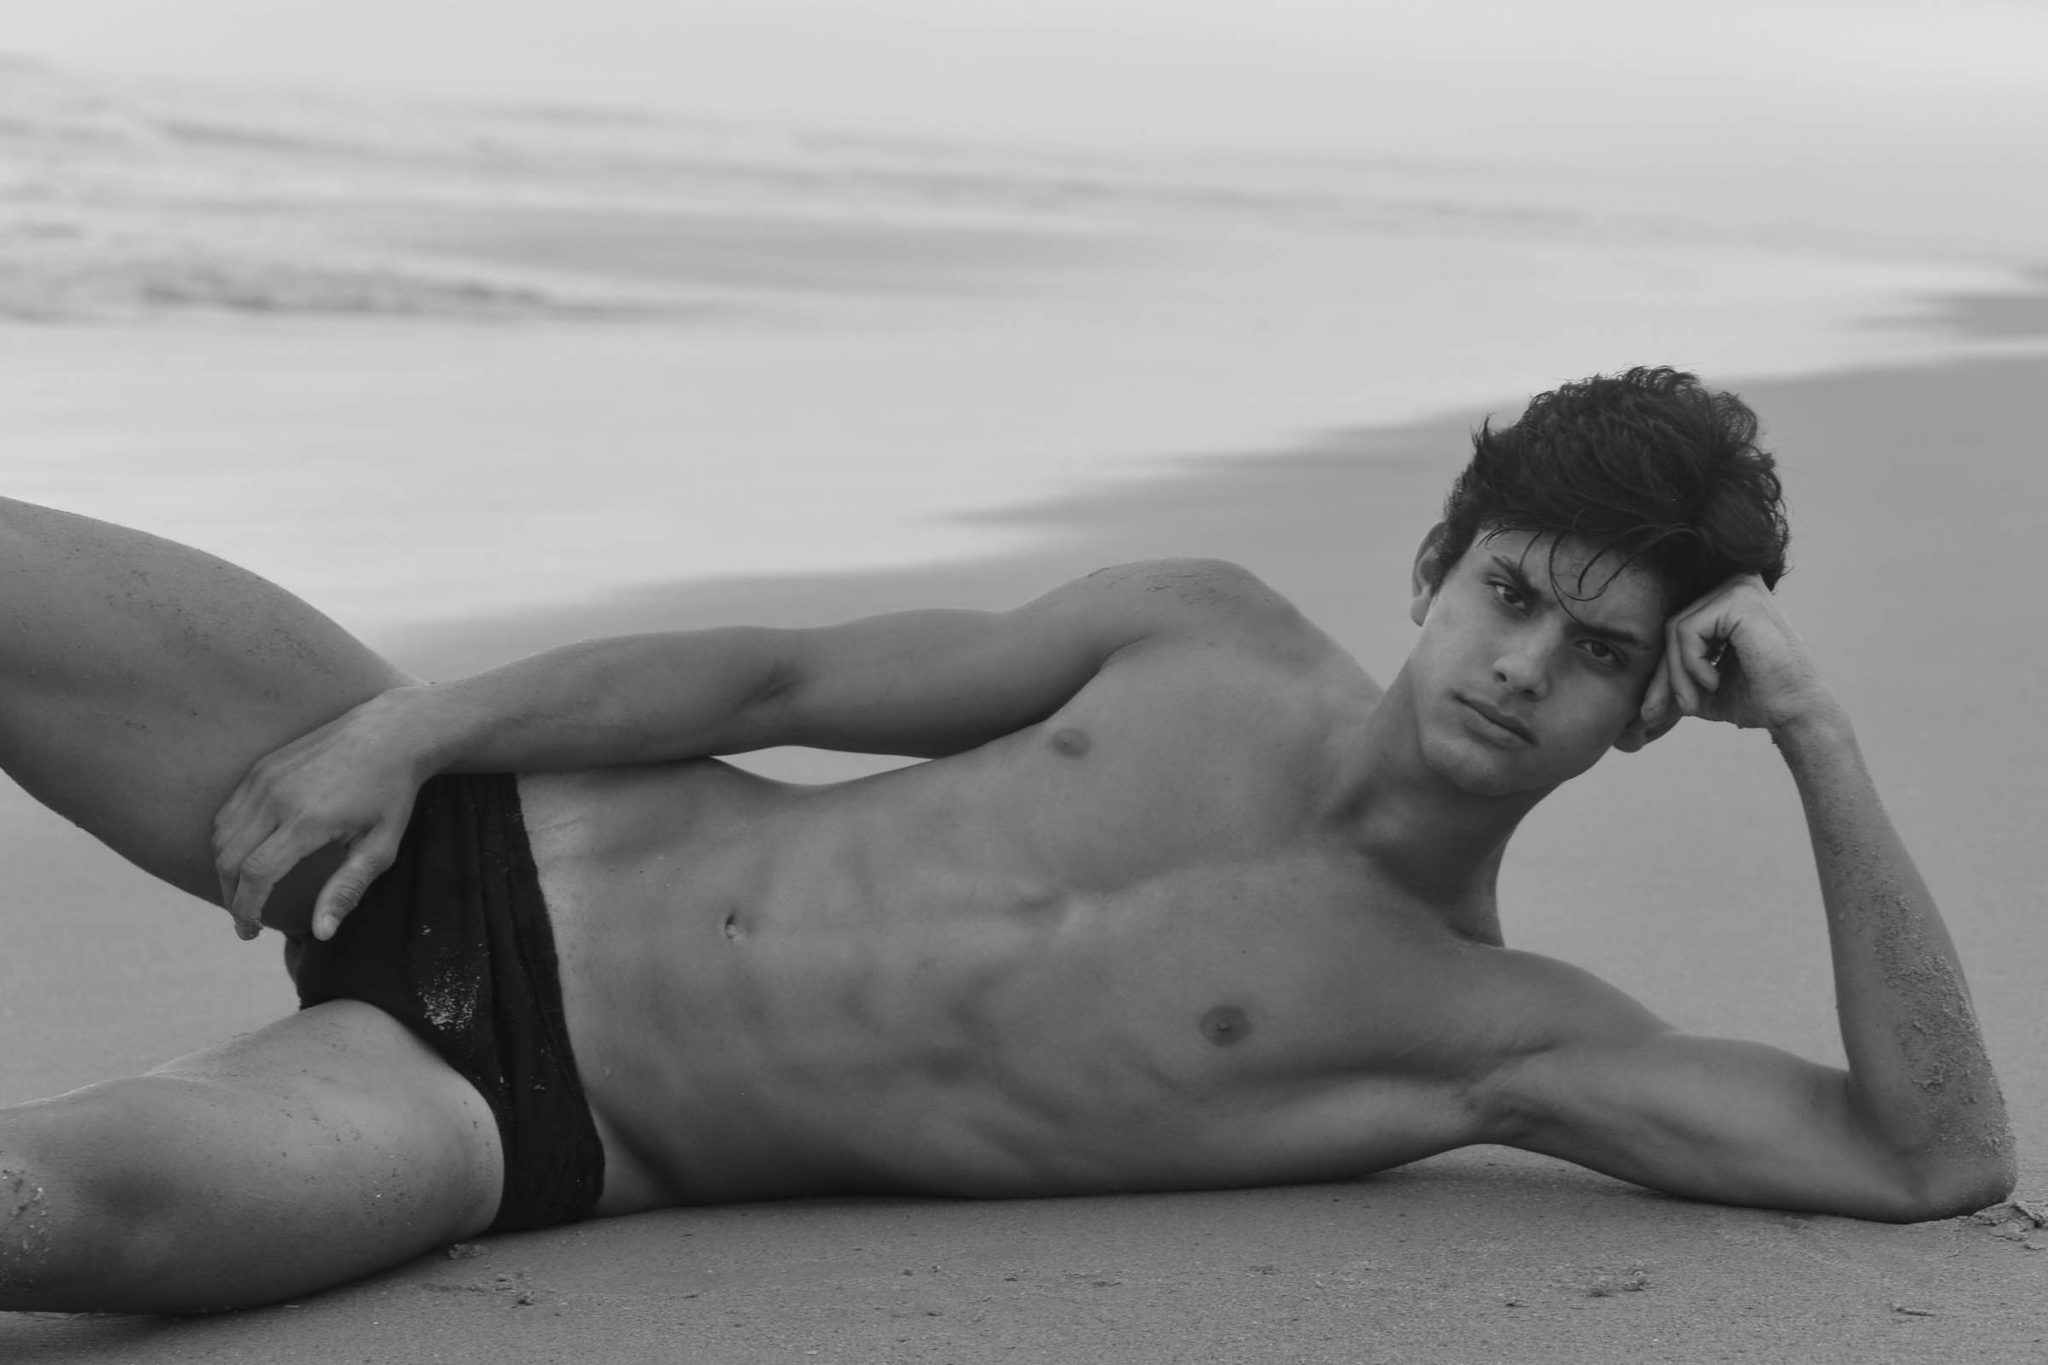 Gustavo Chaves by Vitor Lisboa for Brazilian Male Model